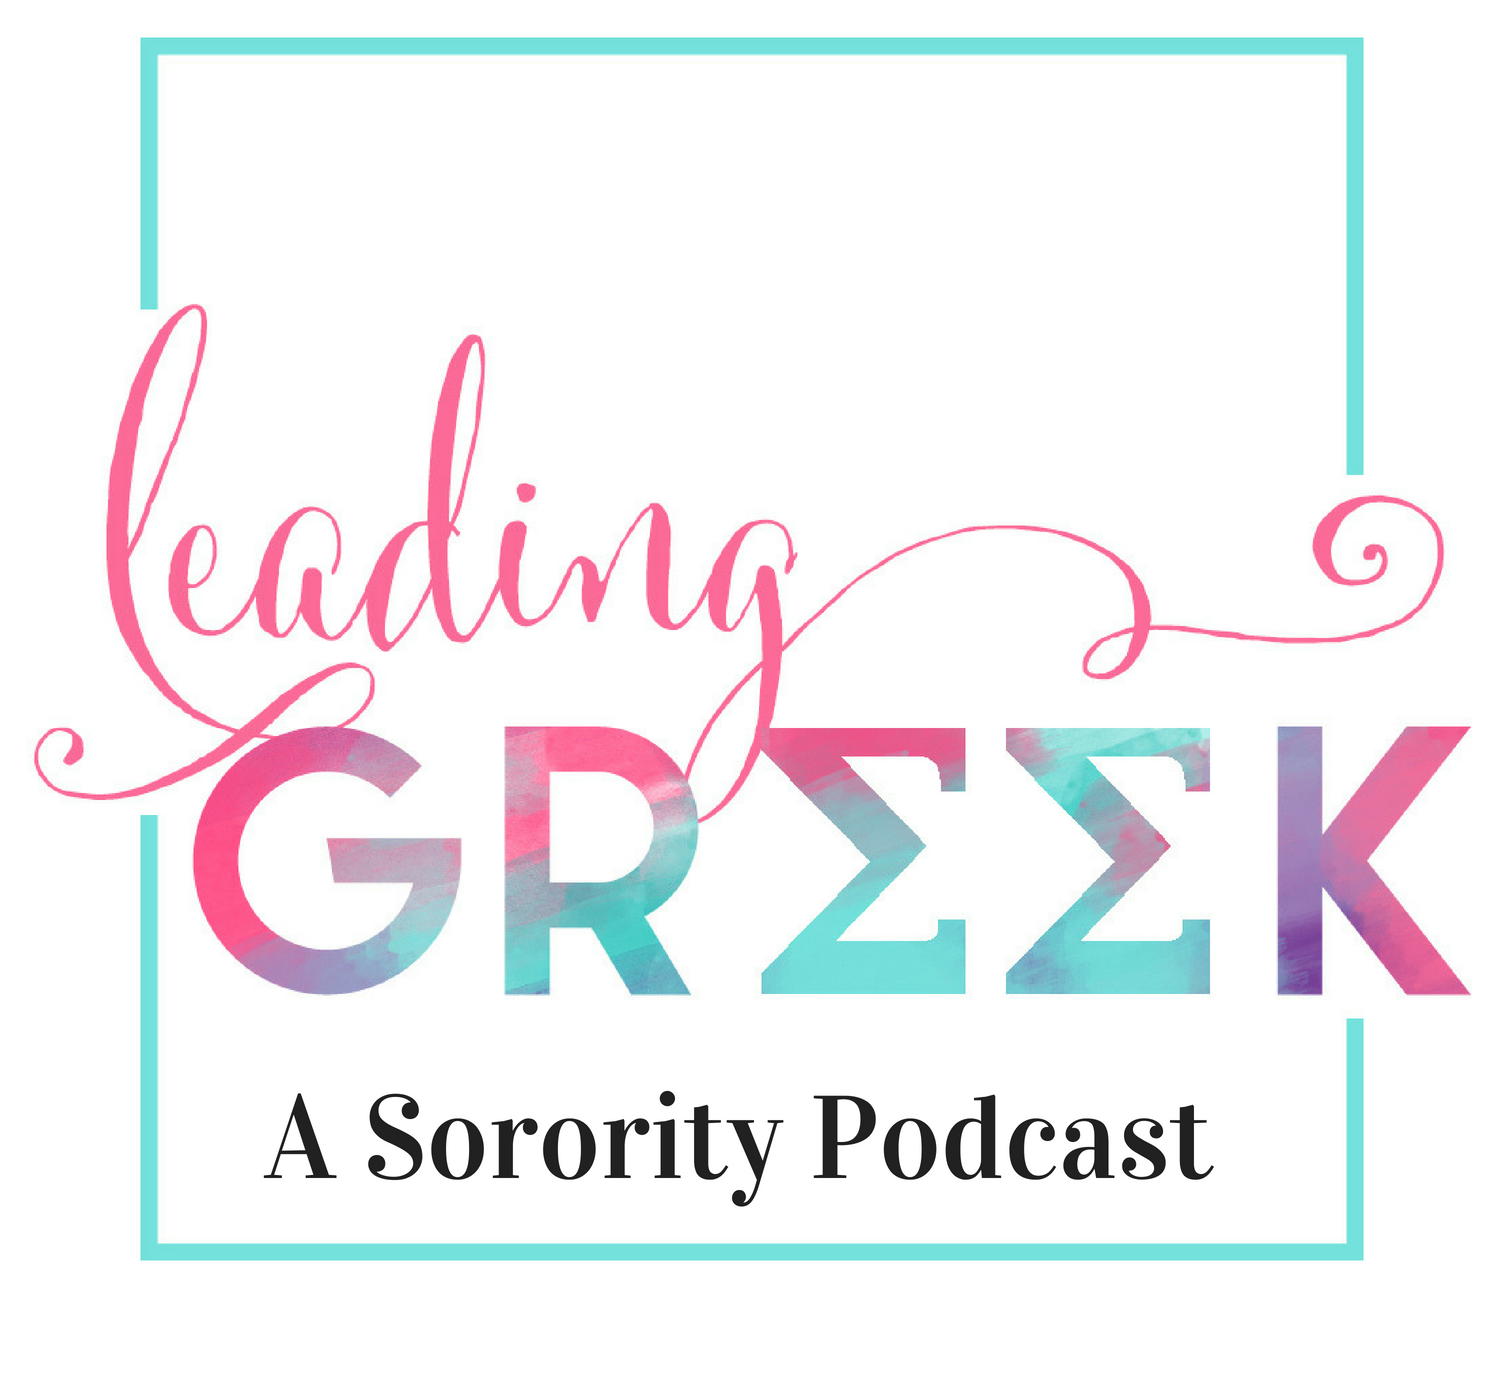 Listen Now - For Leading Greek on the go, check out Leading Greek: A Sorority Podcast! We're talking tips, resources, advice, support and how to make the most of your lifelong sorority membership.Hear from me and guest experts on how we can elevate the sorority experience together. Subscribe to the podcast on iTunes, Stitcher, or wherever you get your podcasts.